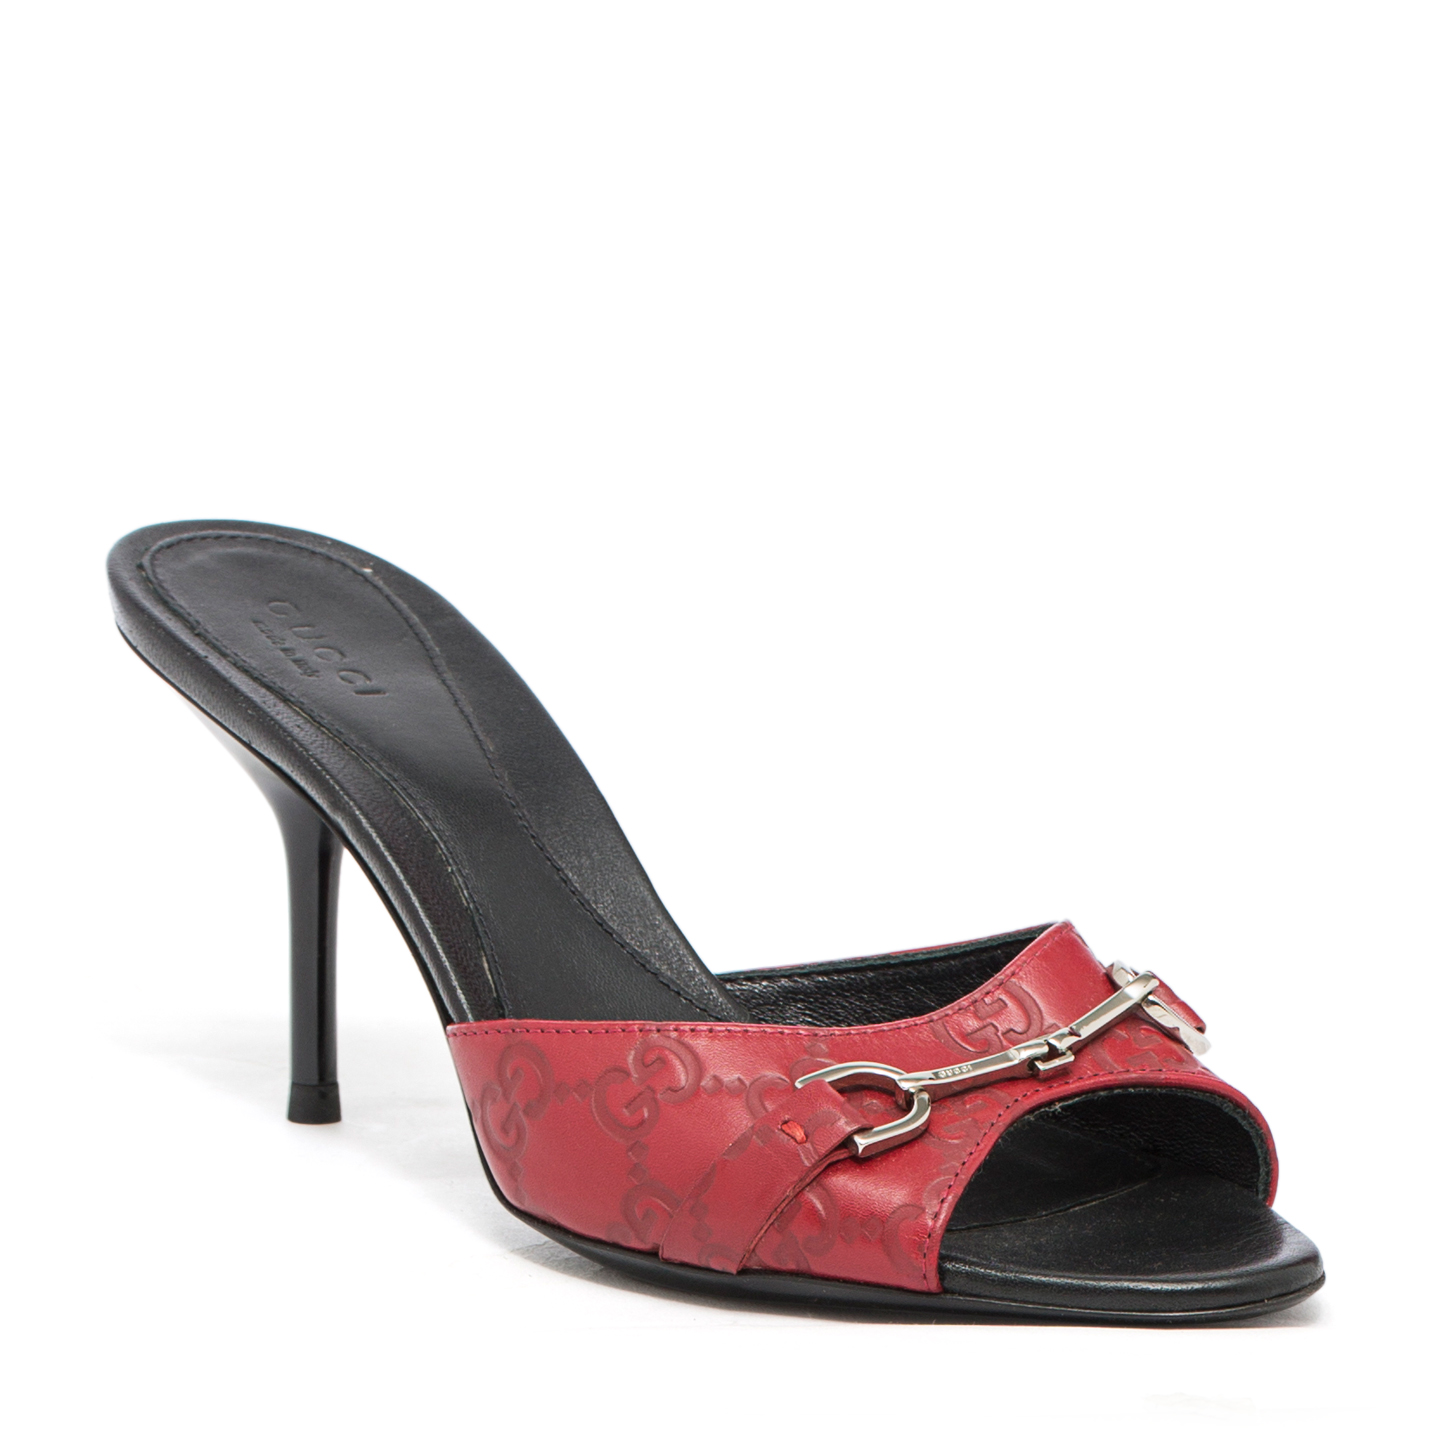 Gucci Red Guccissima Horsebit Slide Sandals 01